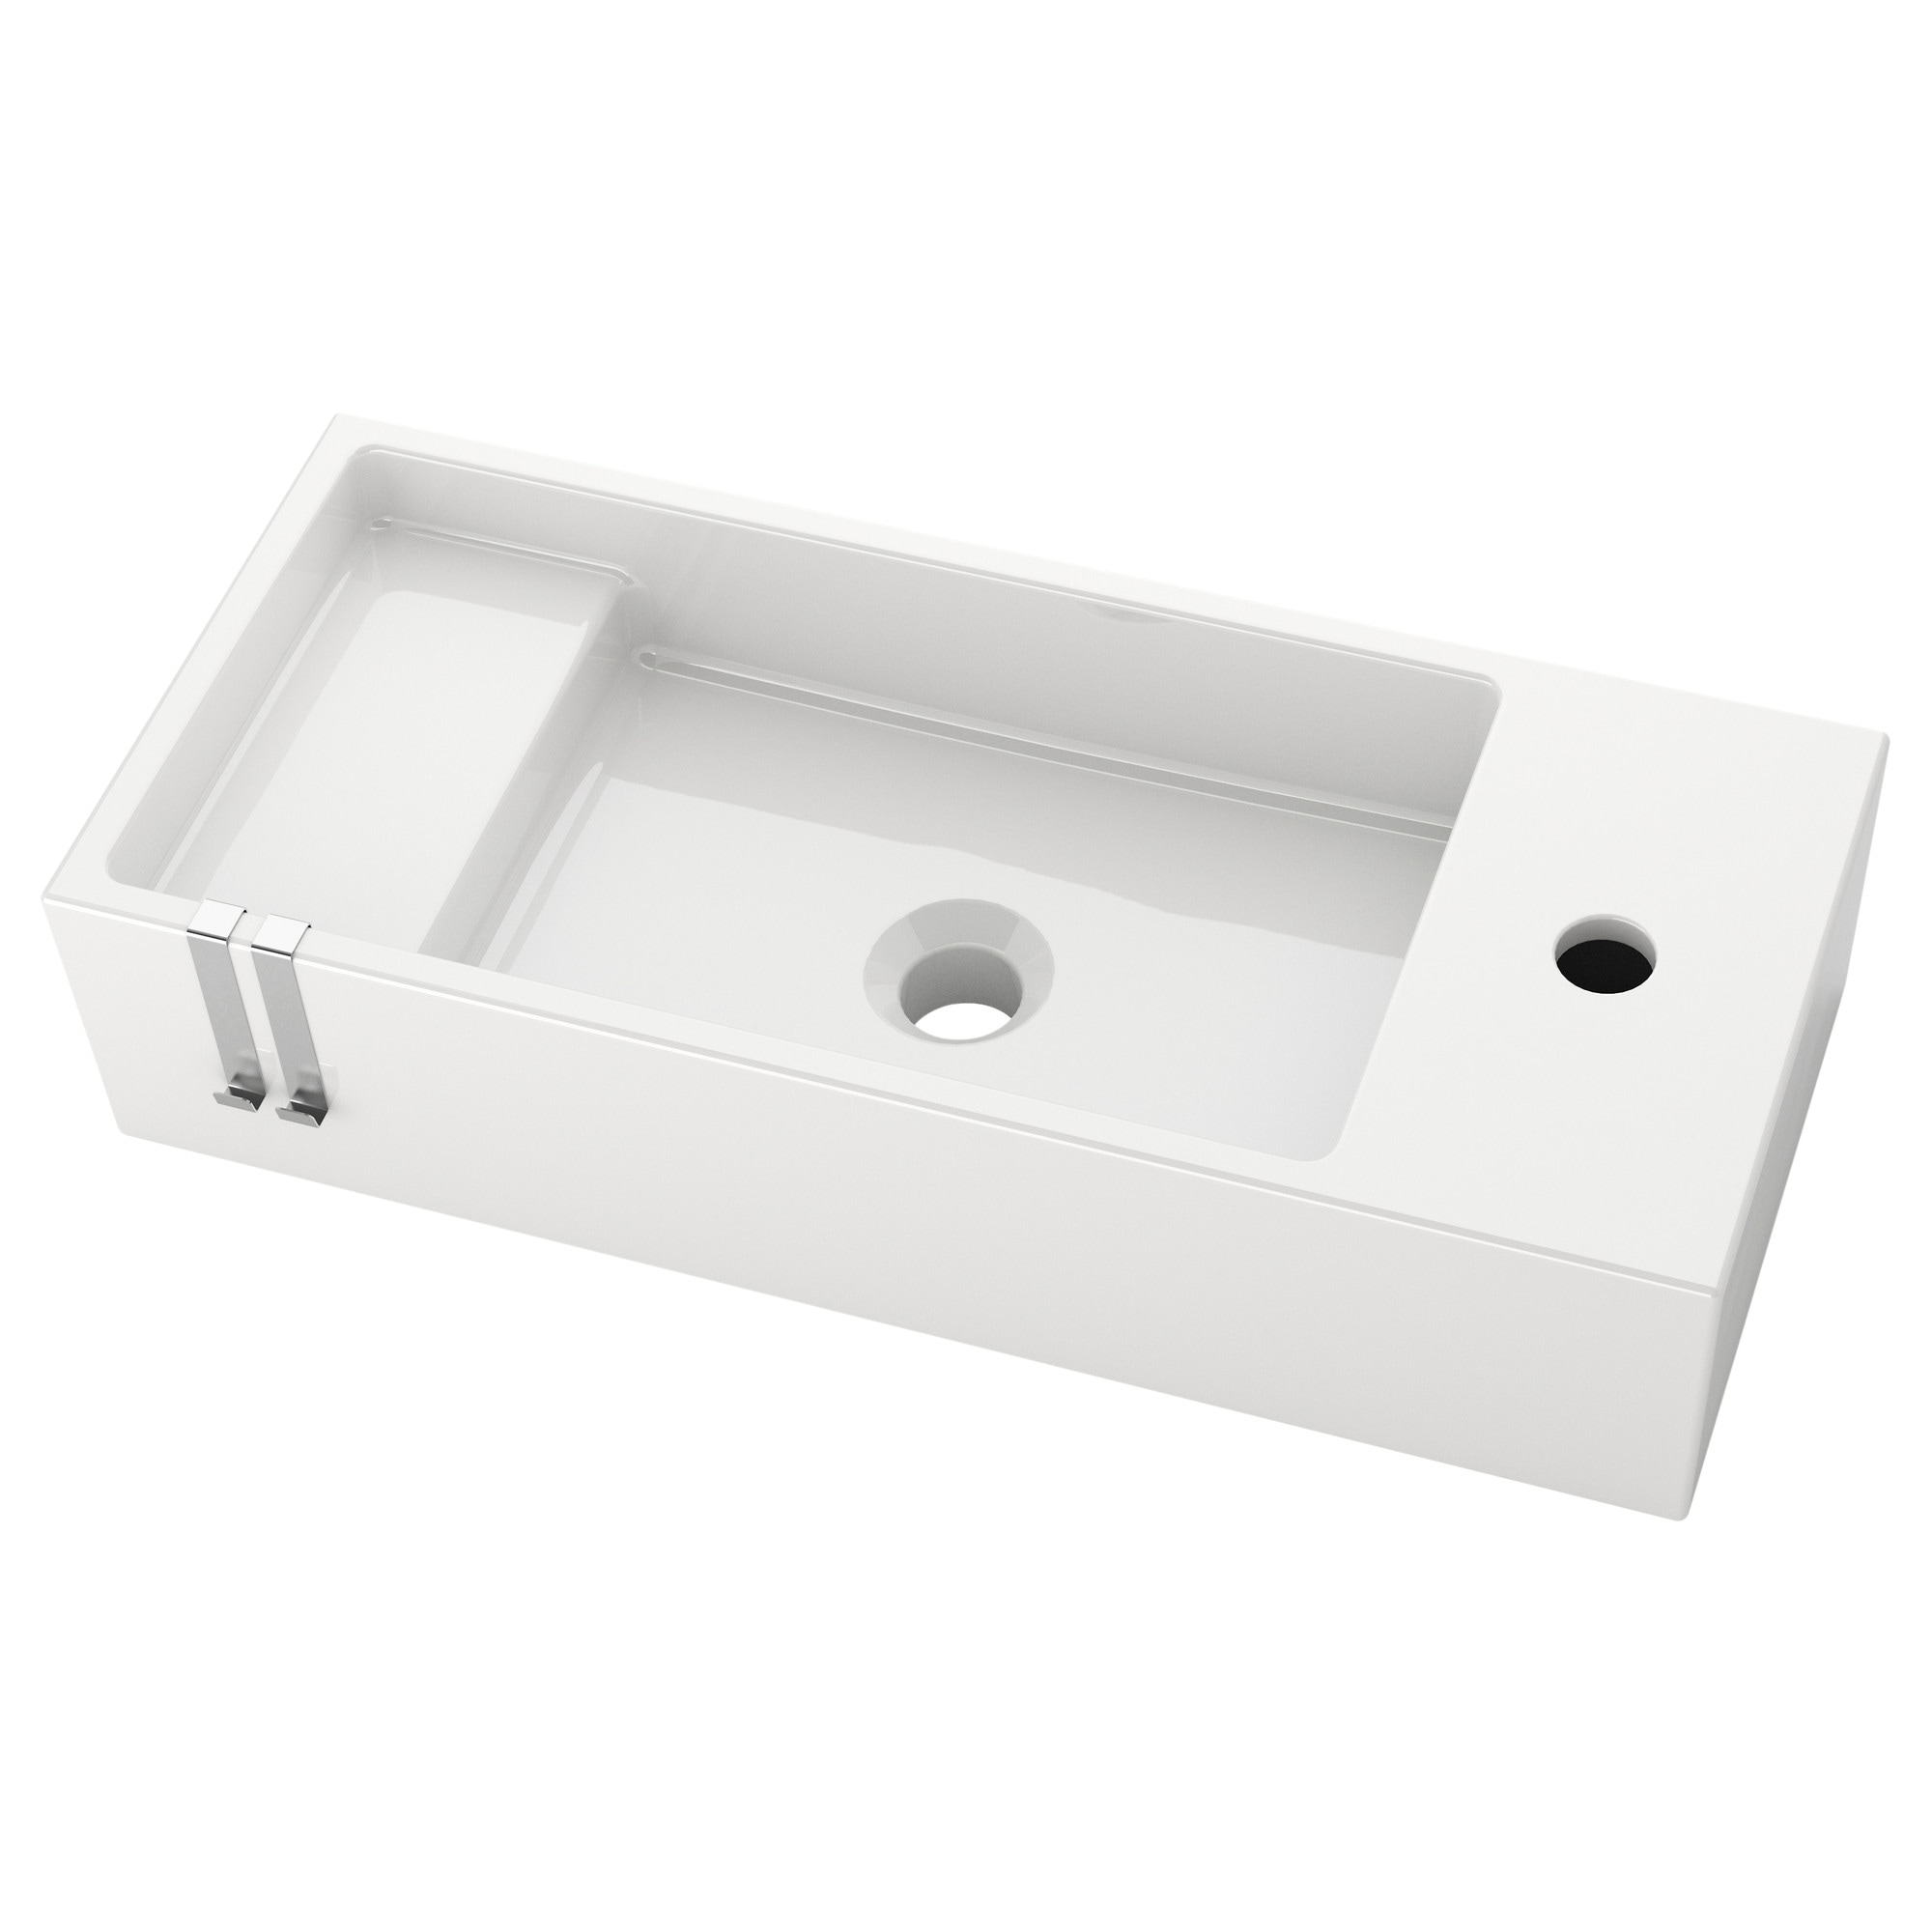 "Bathroom Sinks Ikea lillÅngen sink - 23 5/8x10 5/8x5 1/2 "" - ikea"